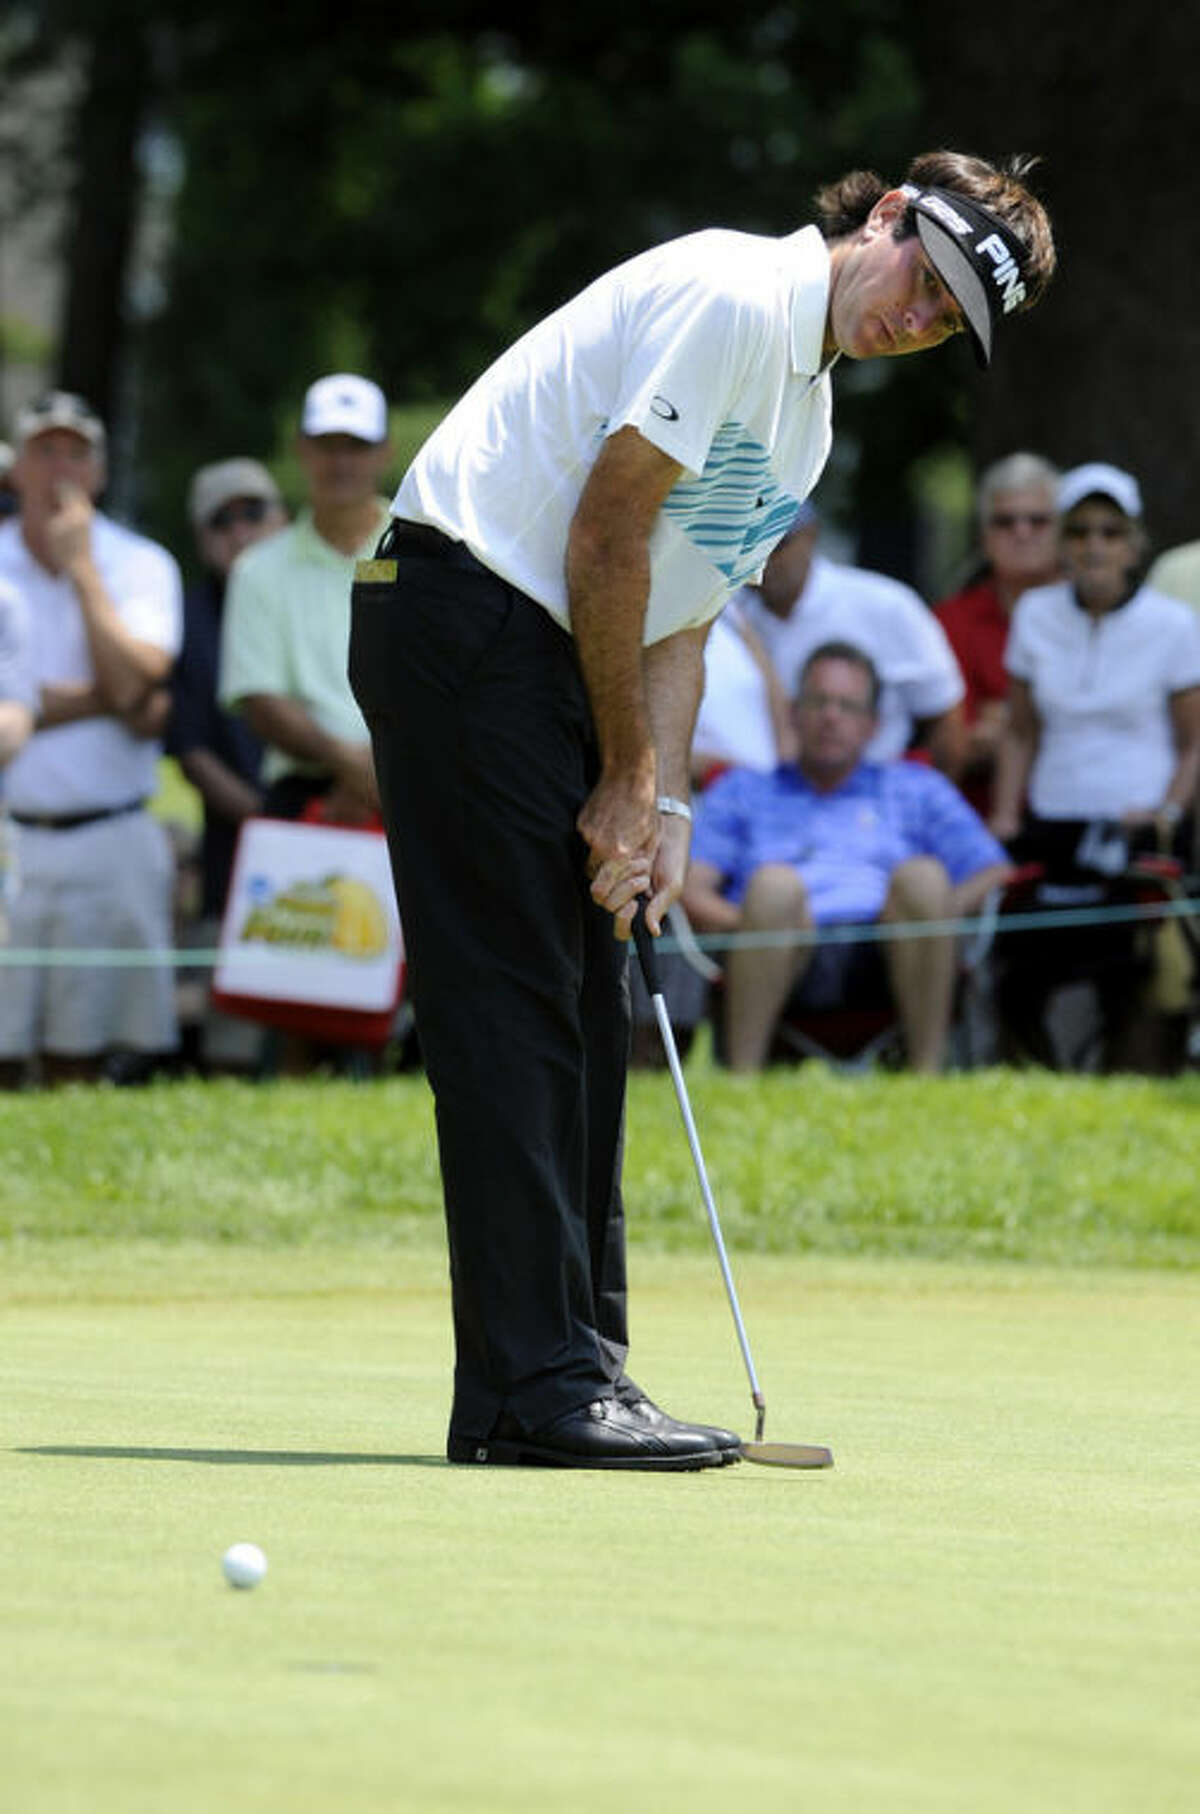 Bubba Watson watches his putt on the seventh green during the second round of the Travelers Championship golf tournament in Cromwell, Conn., Friday, June 21, 2013. Watson shot a 3-under par 67 in his round, to go 10-under par for the tournament. (AP Photo/Fred Beckham)